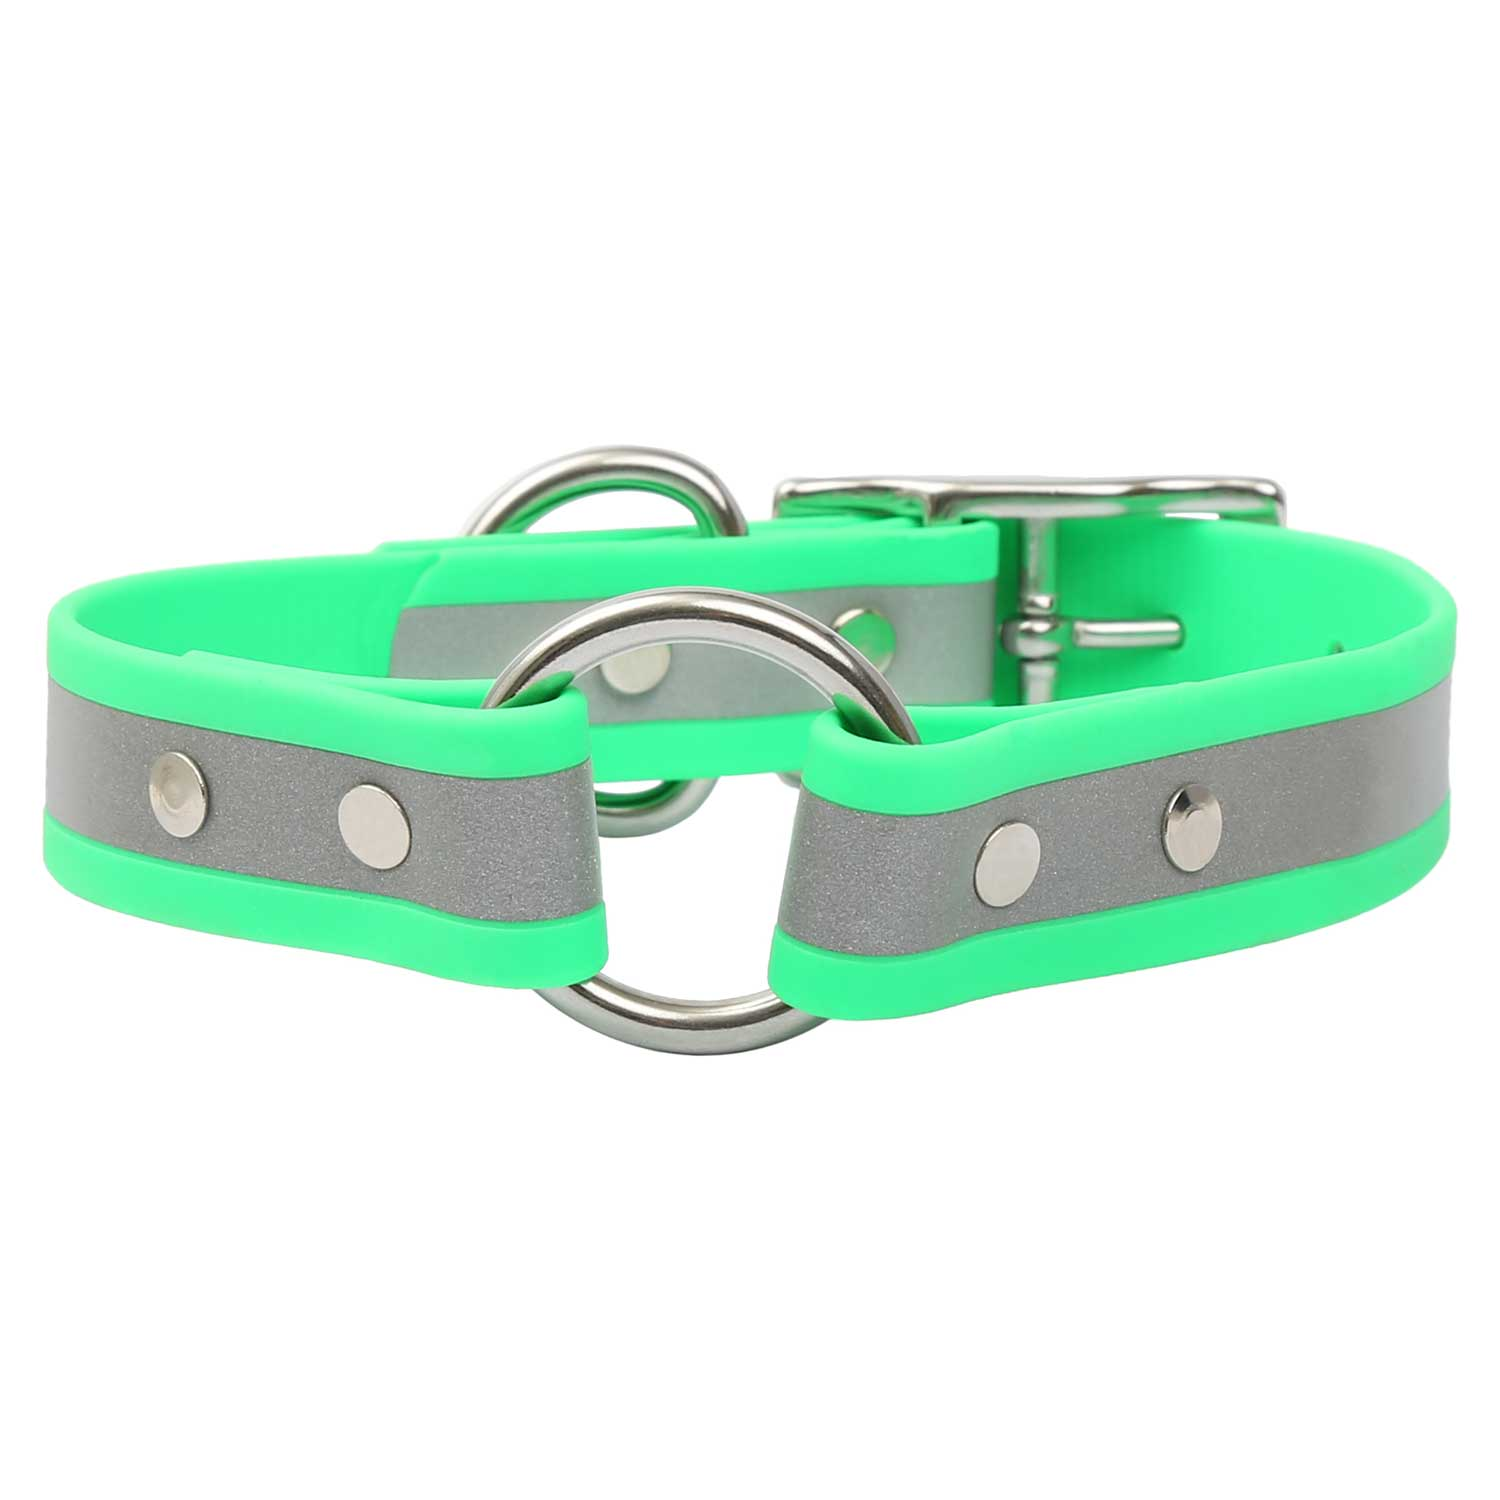 Reflective Waterproof Safety Collar - Front View